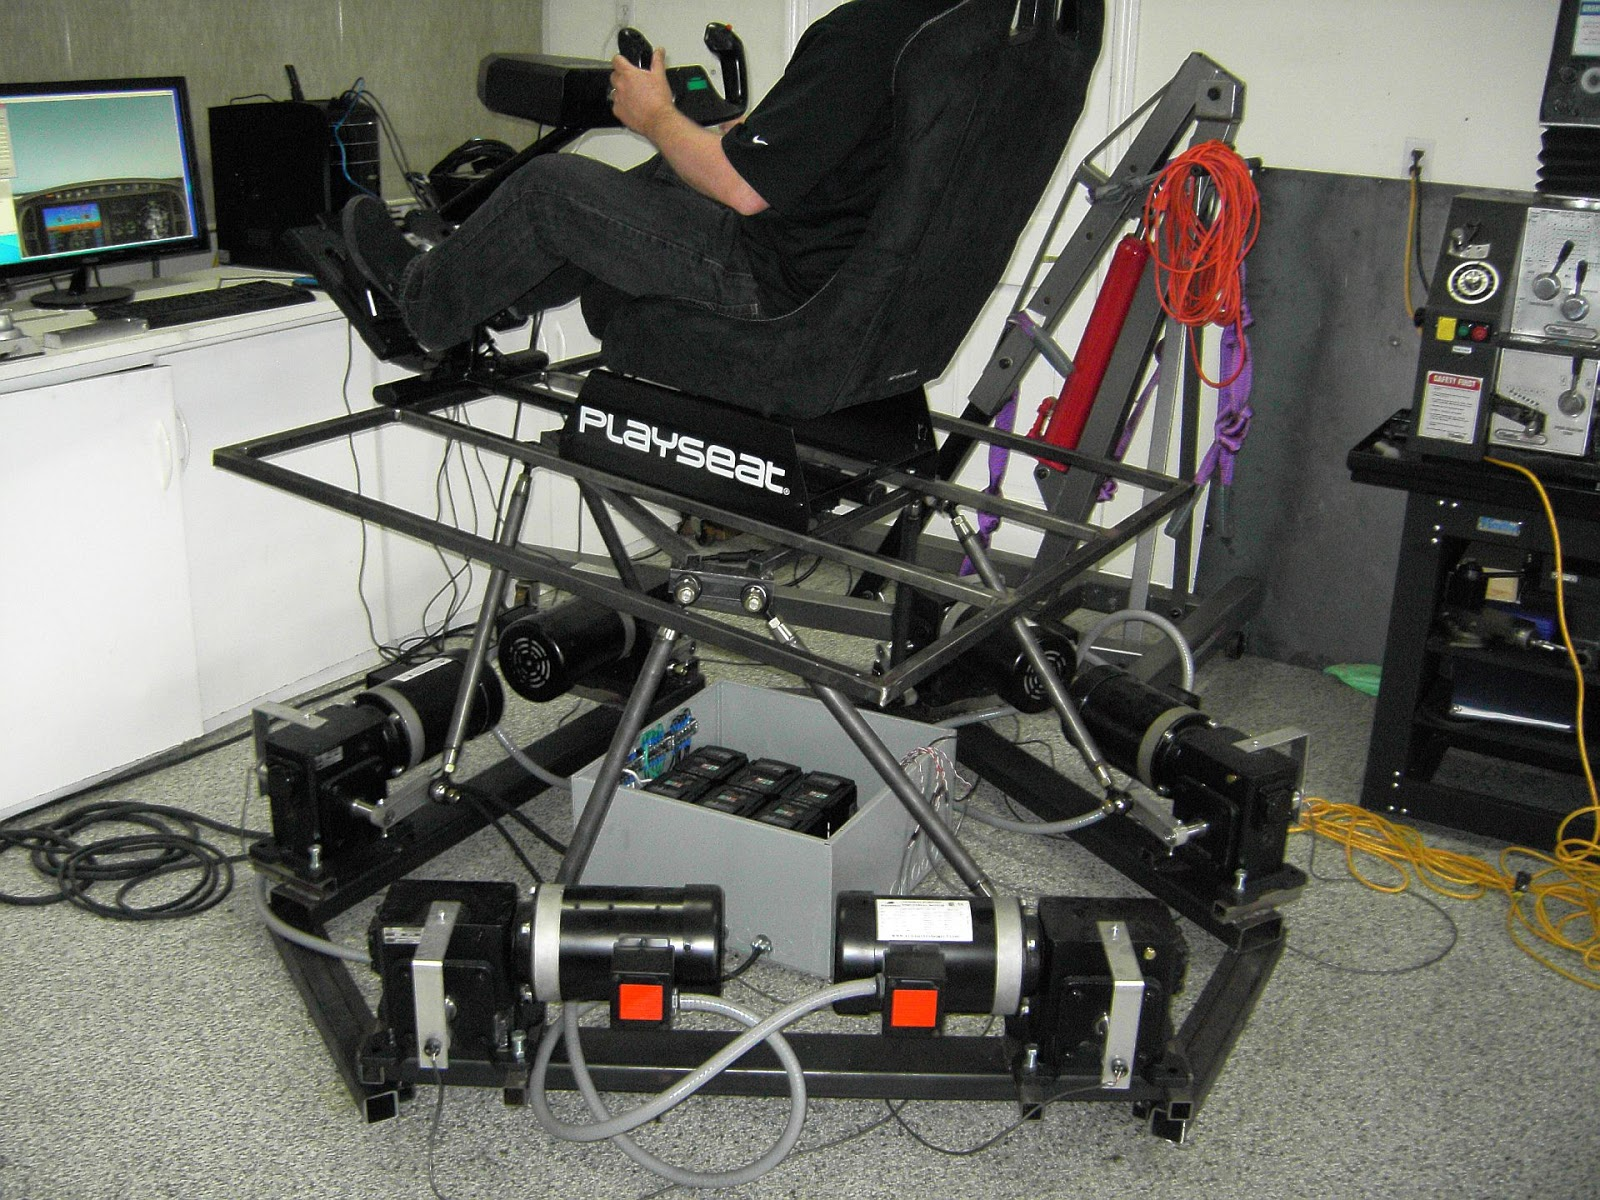 Thanos 6dof Motion Simulator Electronics Some Photos Of